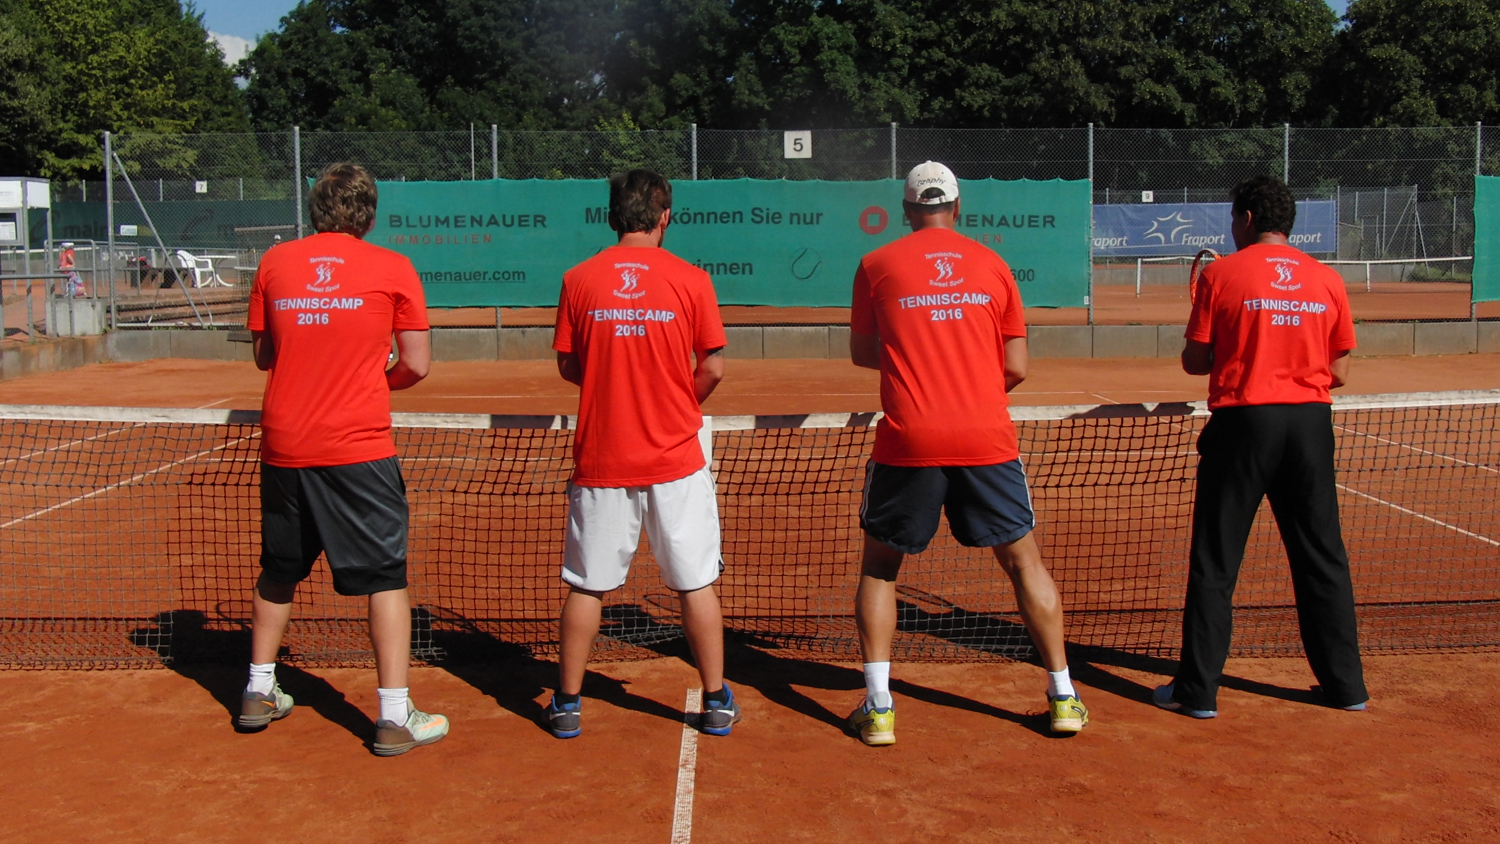 Tenniscamp Sweetspot bei T65_2016 (39)